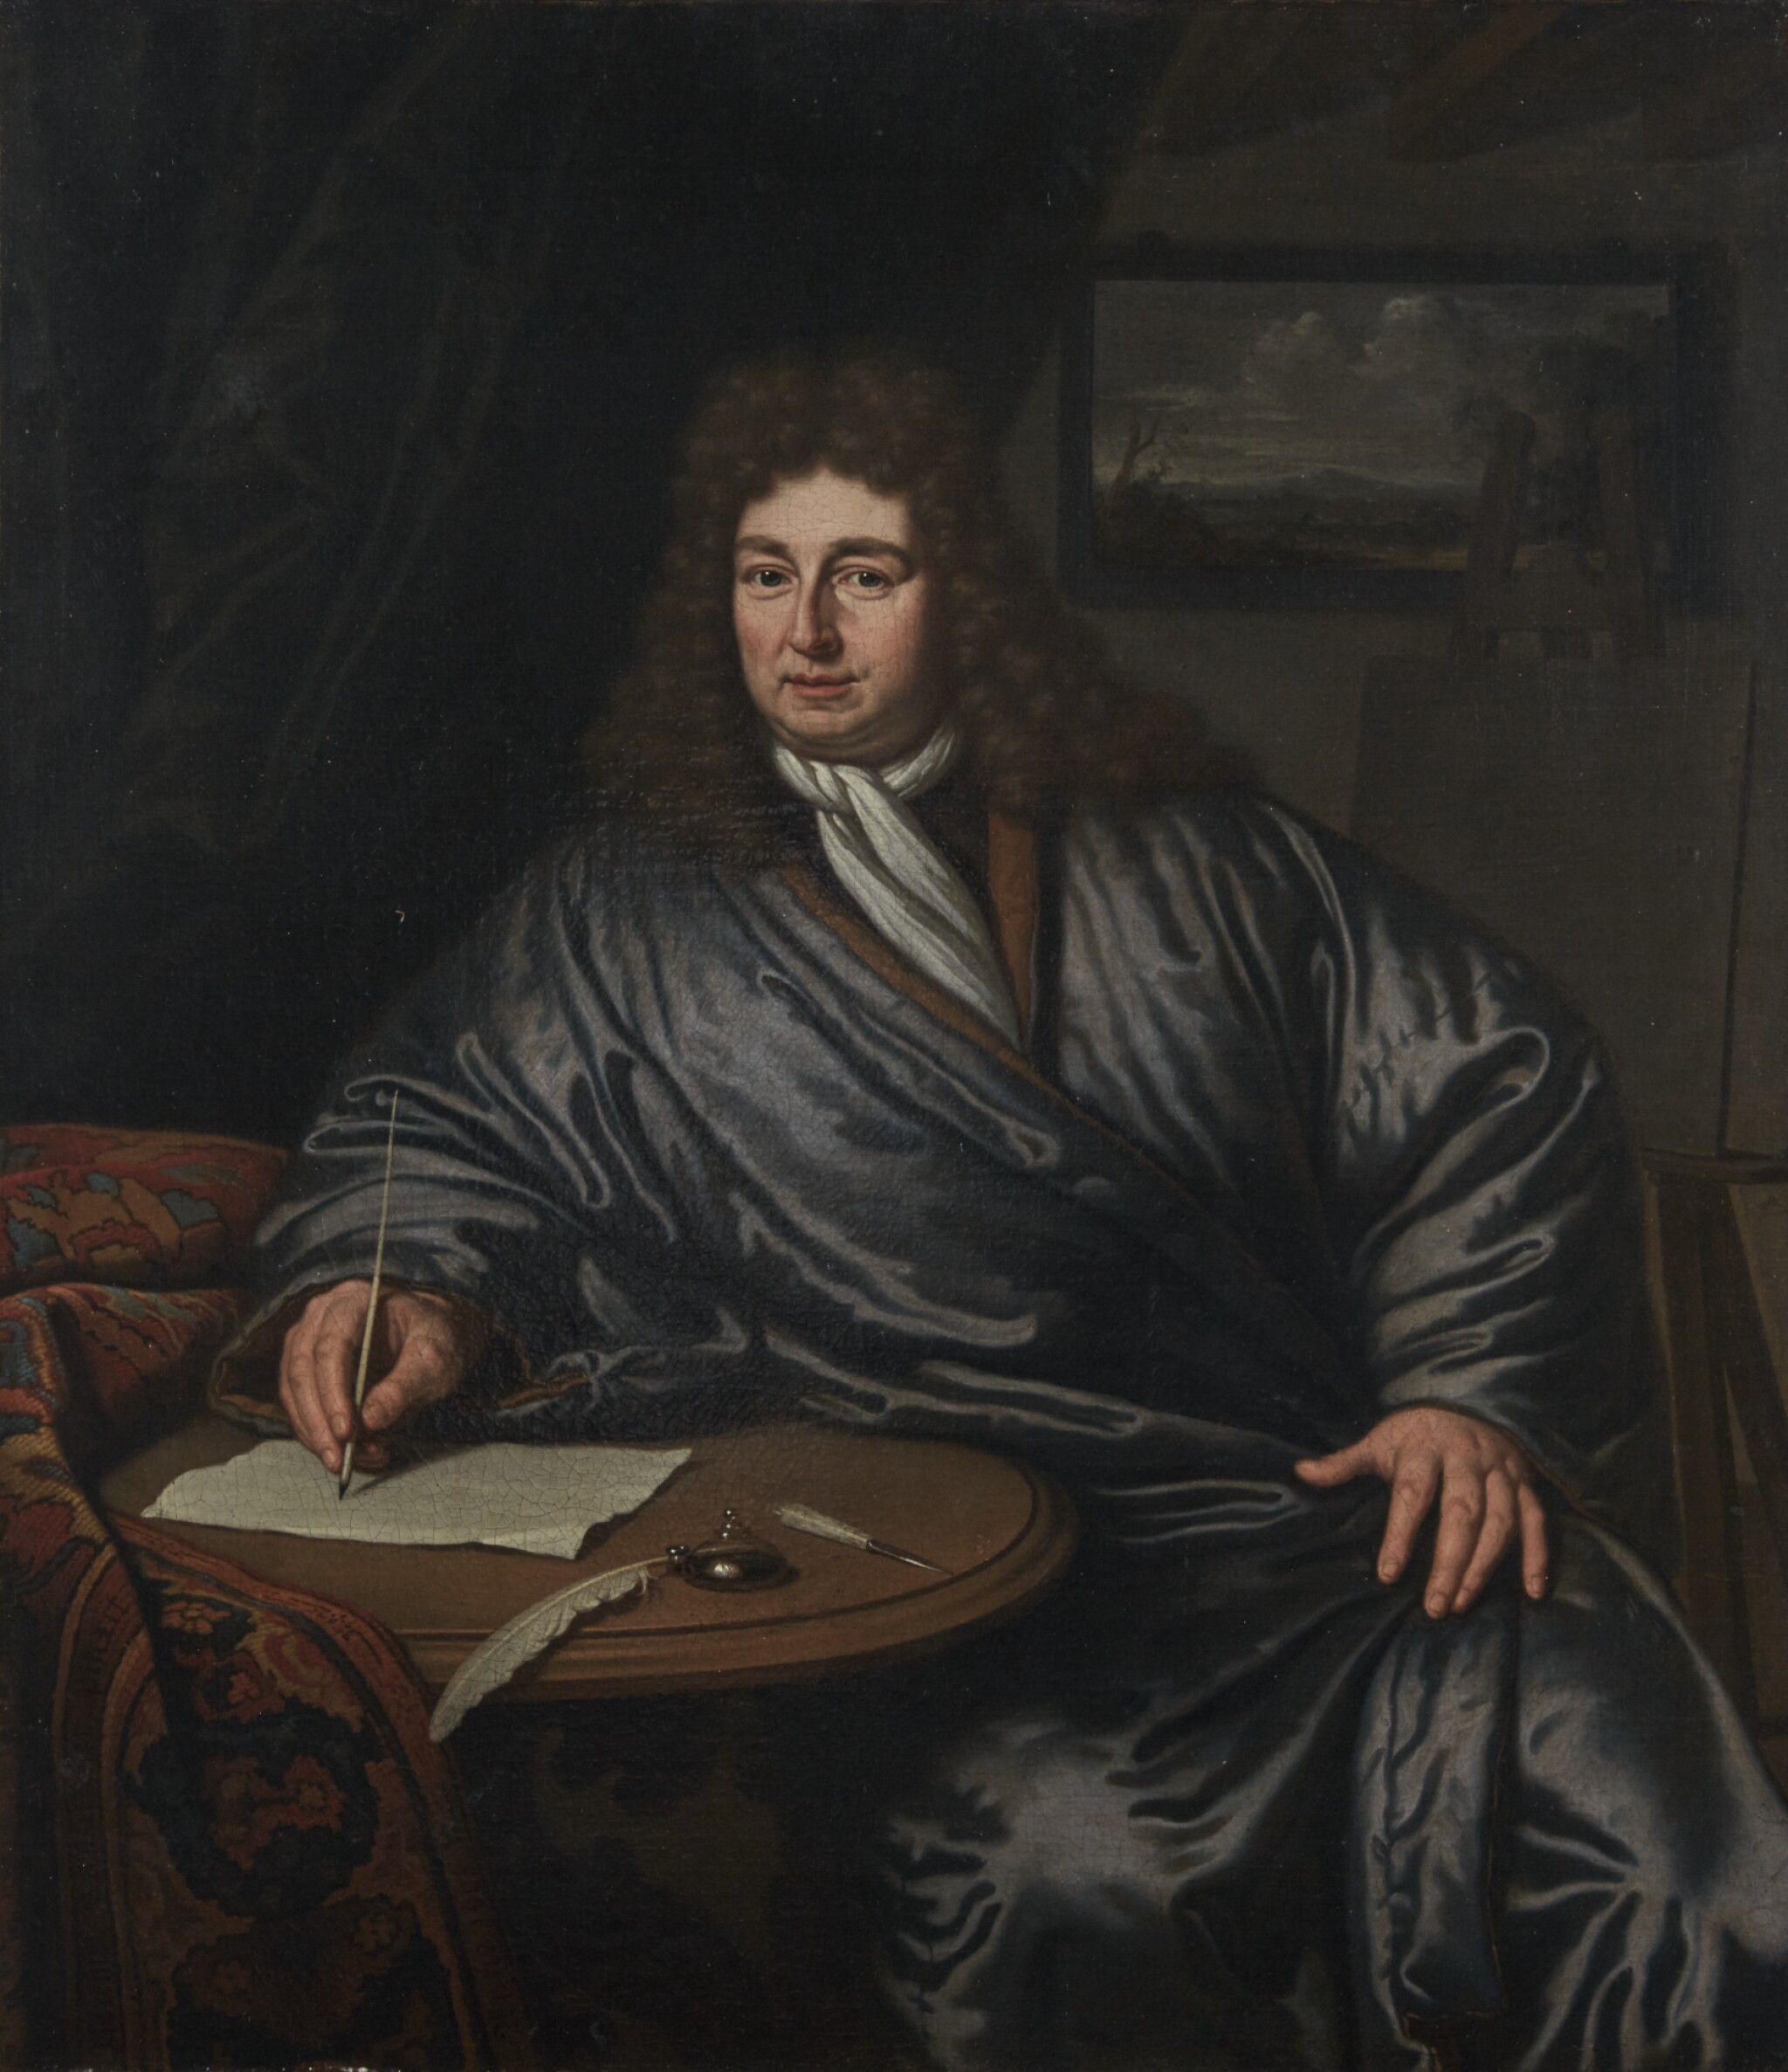 View full screen - View 1 of Lot 38. MICHIEL VAN MUSSCHER | Three quarter-length portrait of an artist seated at his writing table.